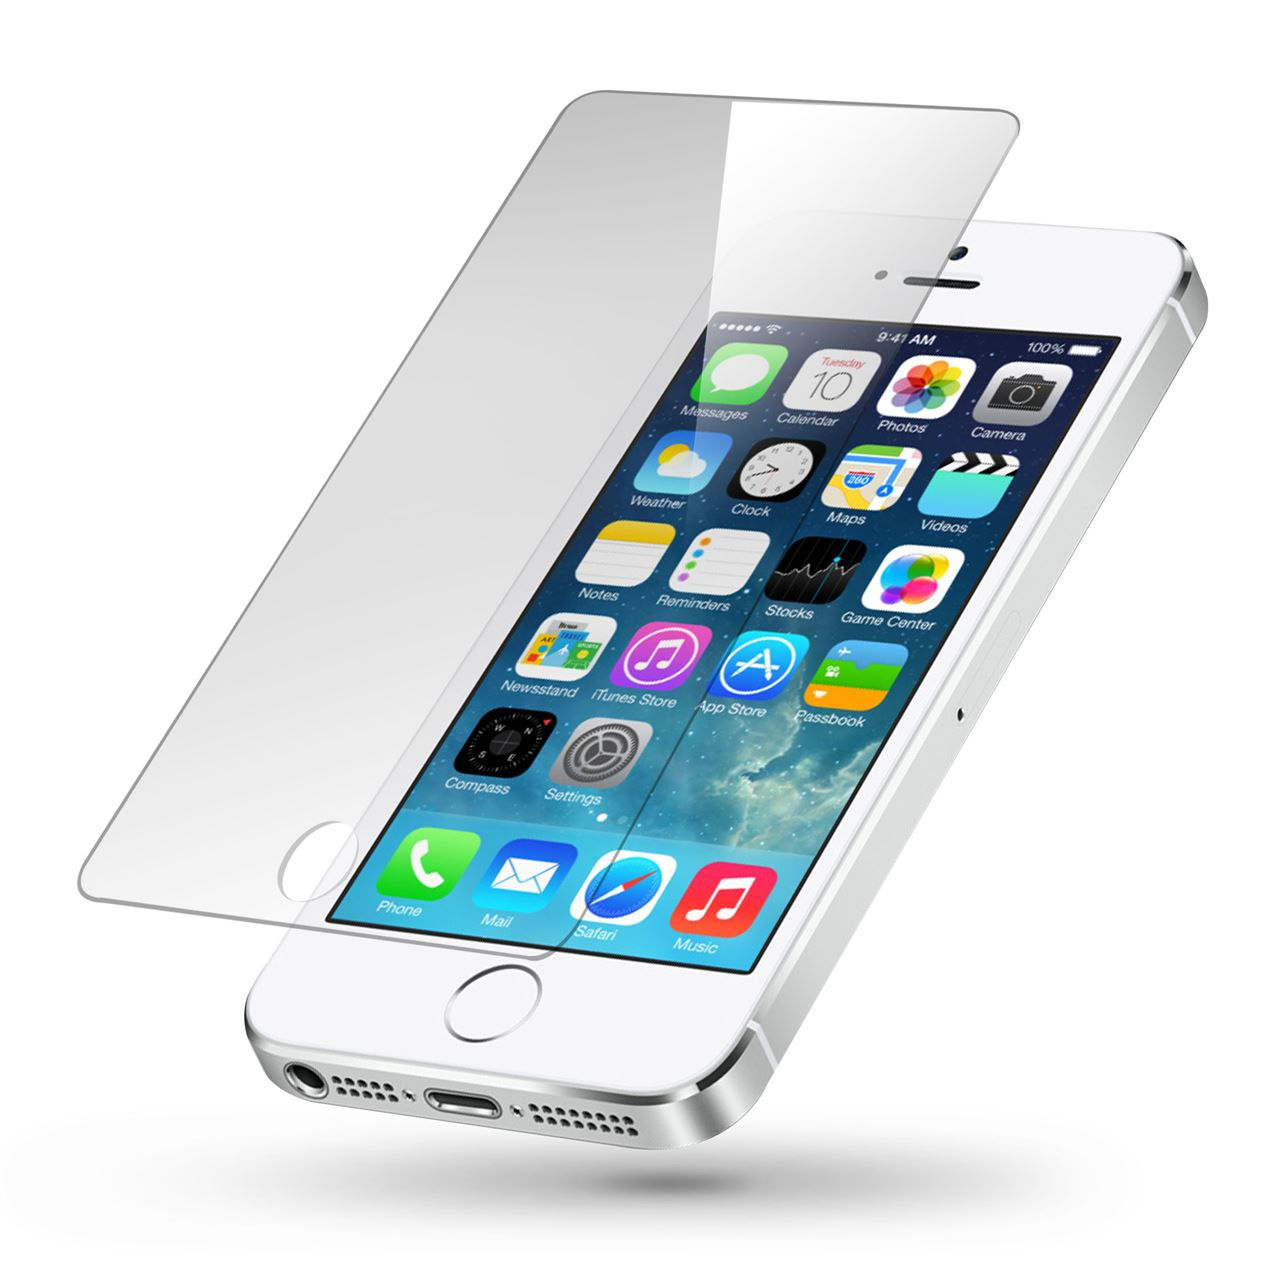 Apple iPhone 5S 32 GB White (Refurbish) Smartphone + Tempered Glass